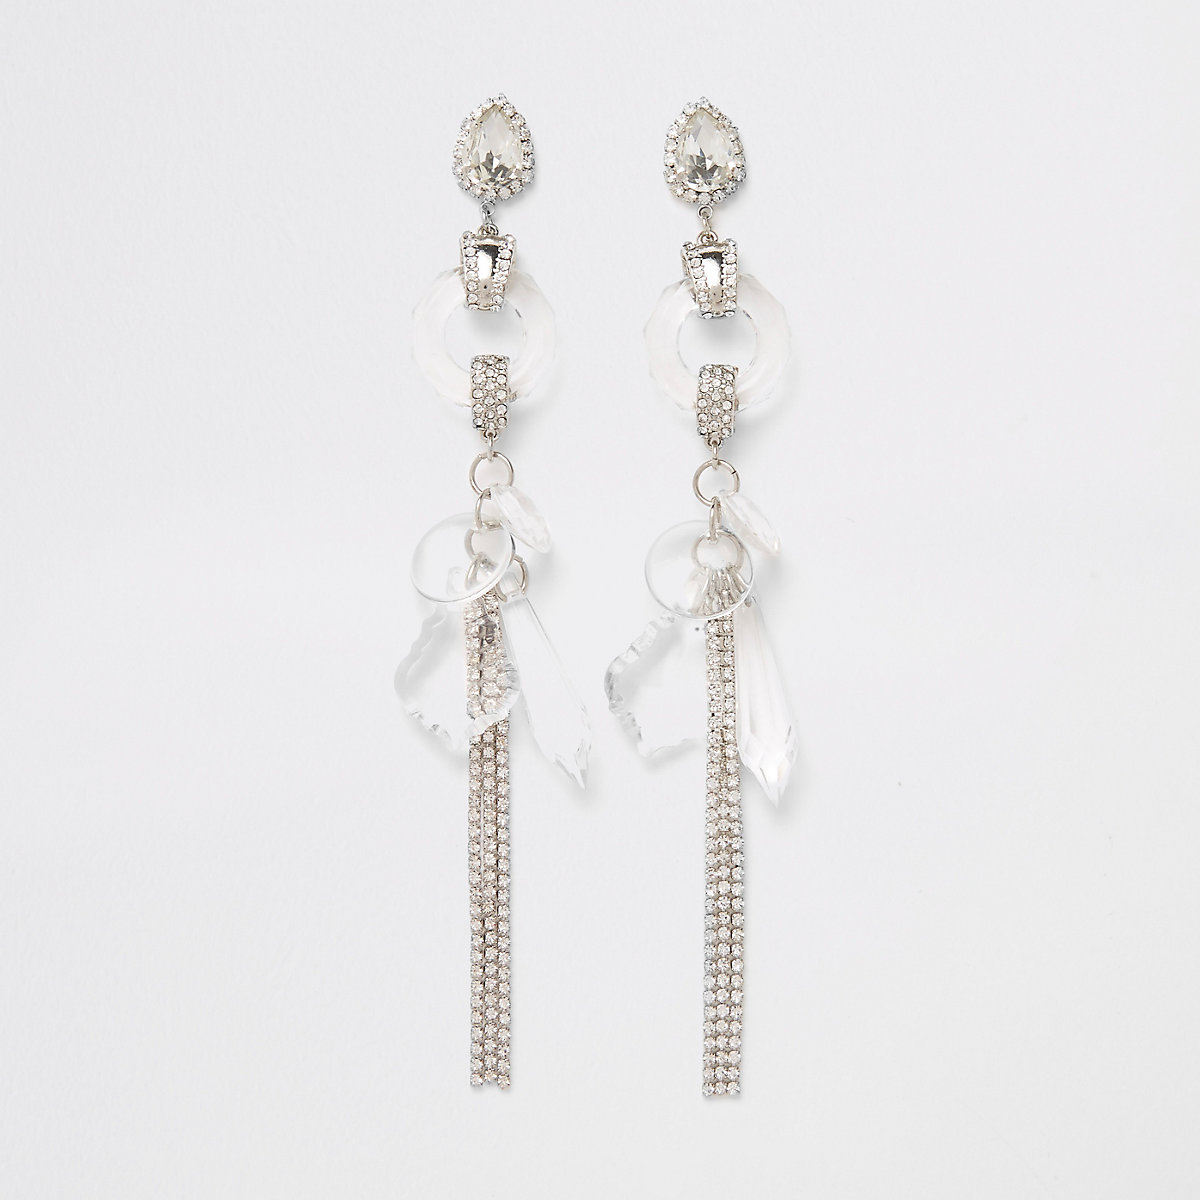 Silver tone diamante and jewel drop earrings